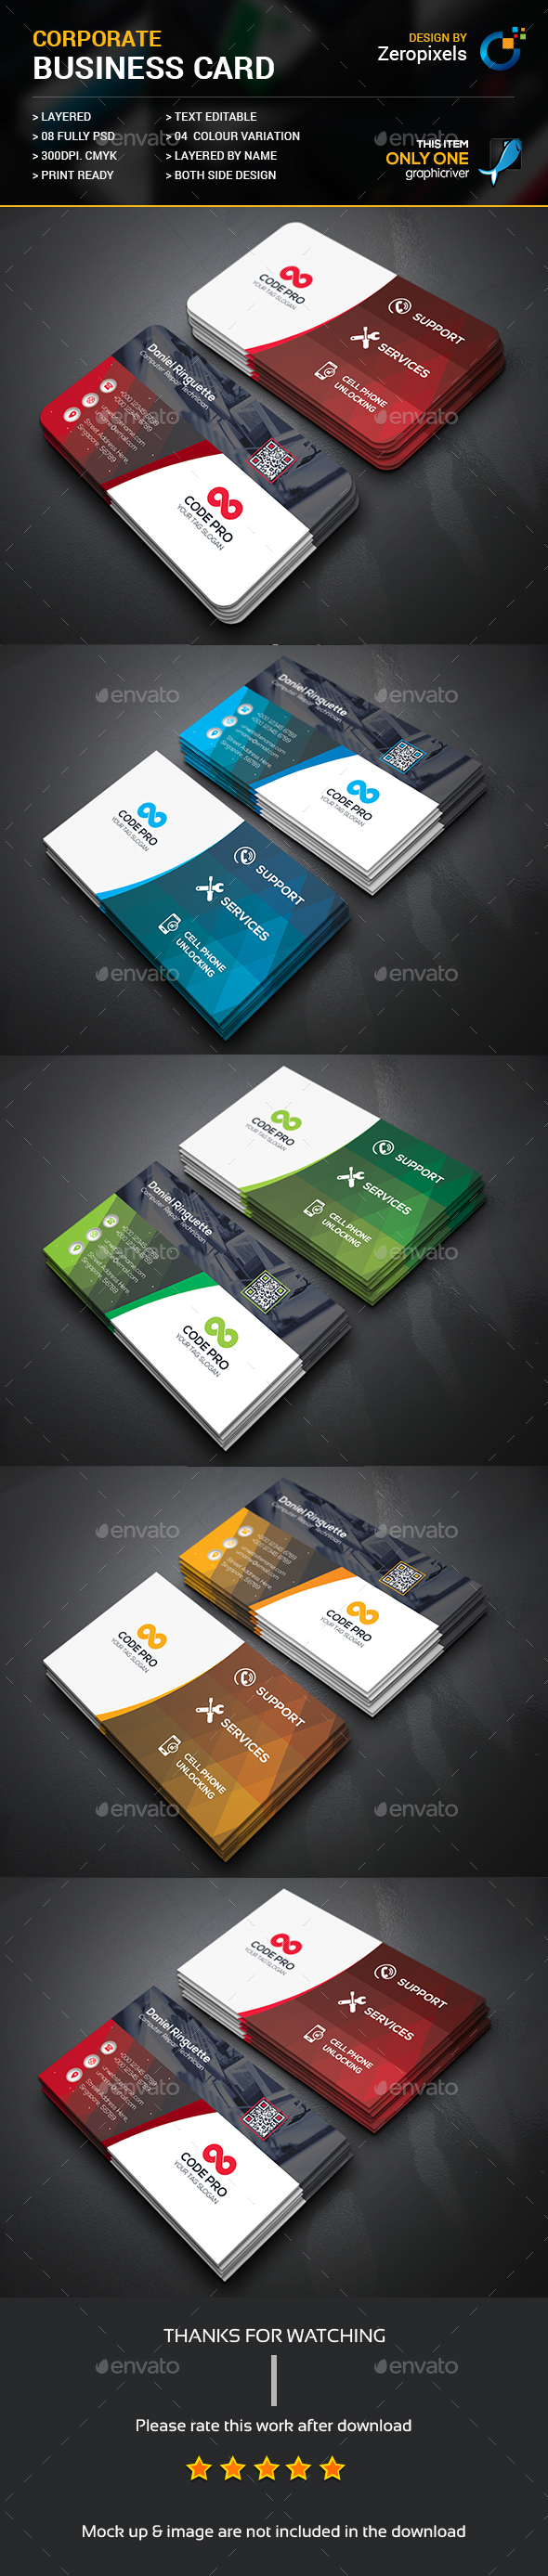 Mobile Computer Repair Business Card — Photoshop PSD #blue #print ...